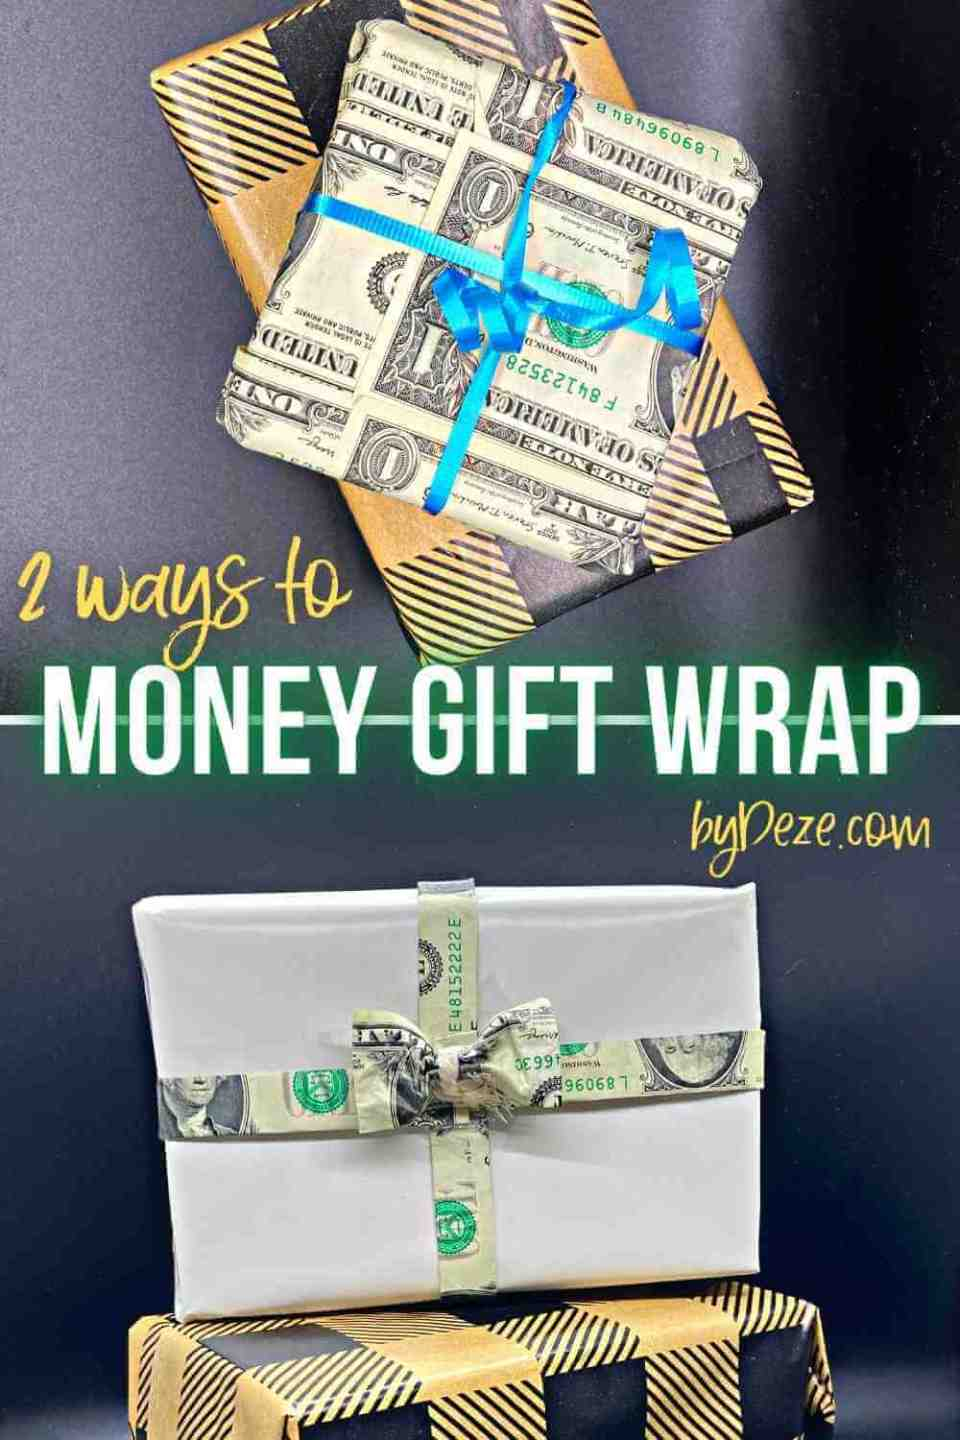 2 ways to gift wrap with money